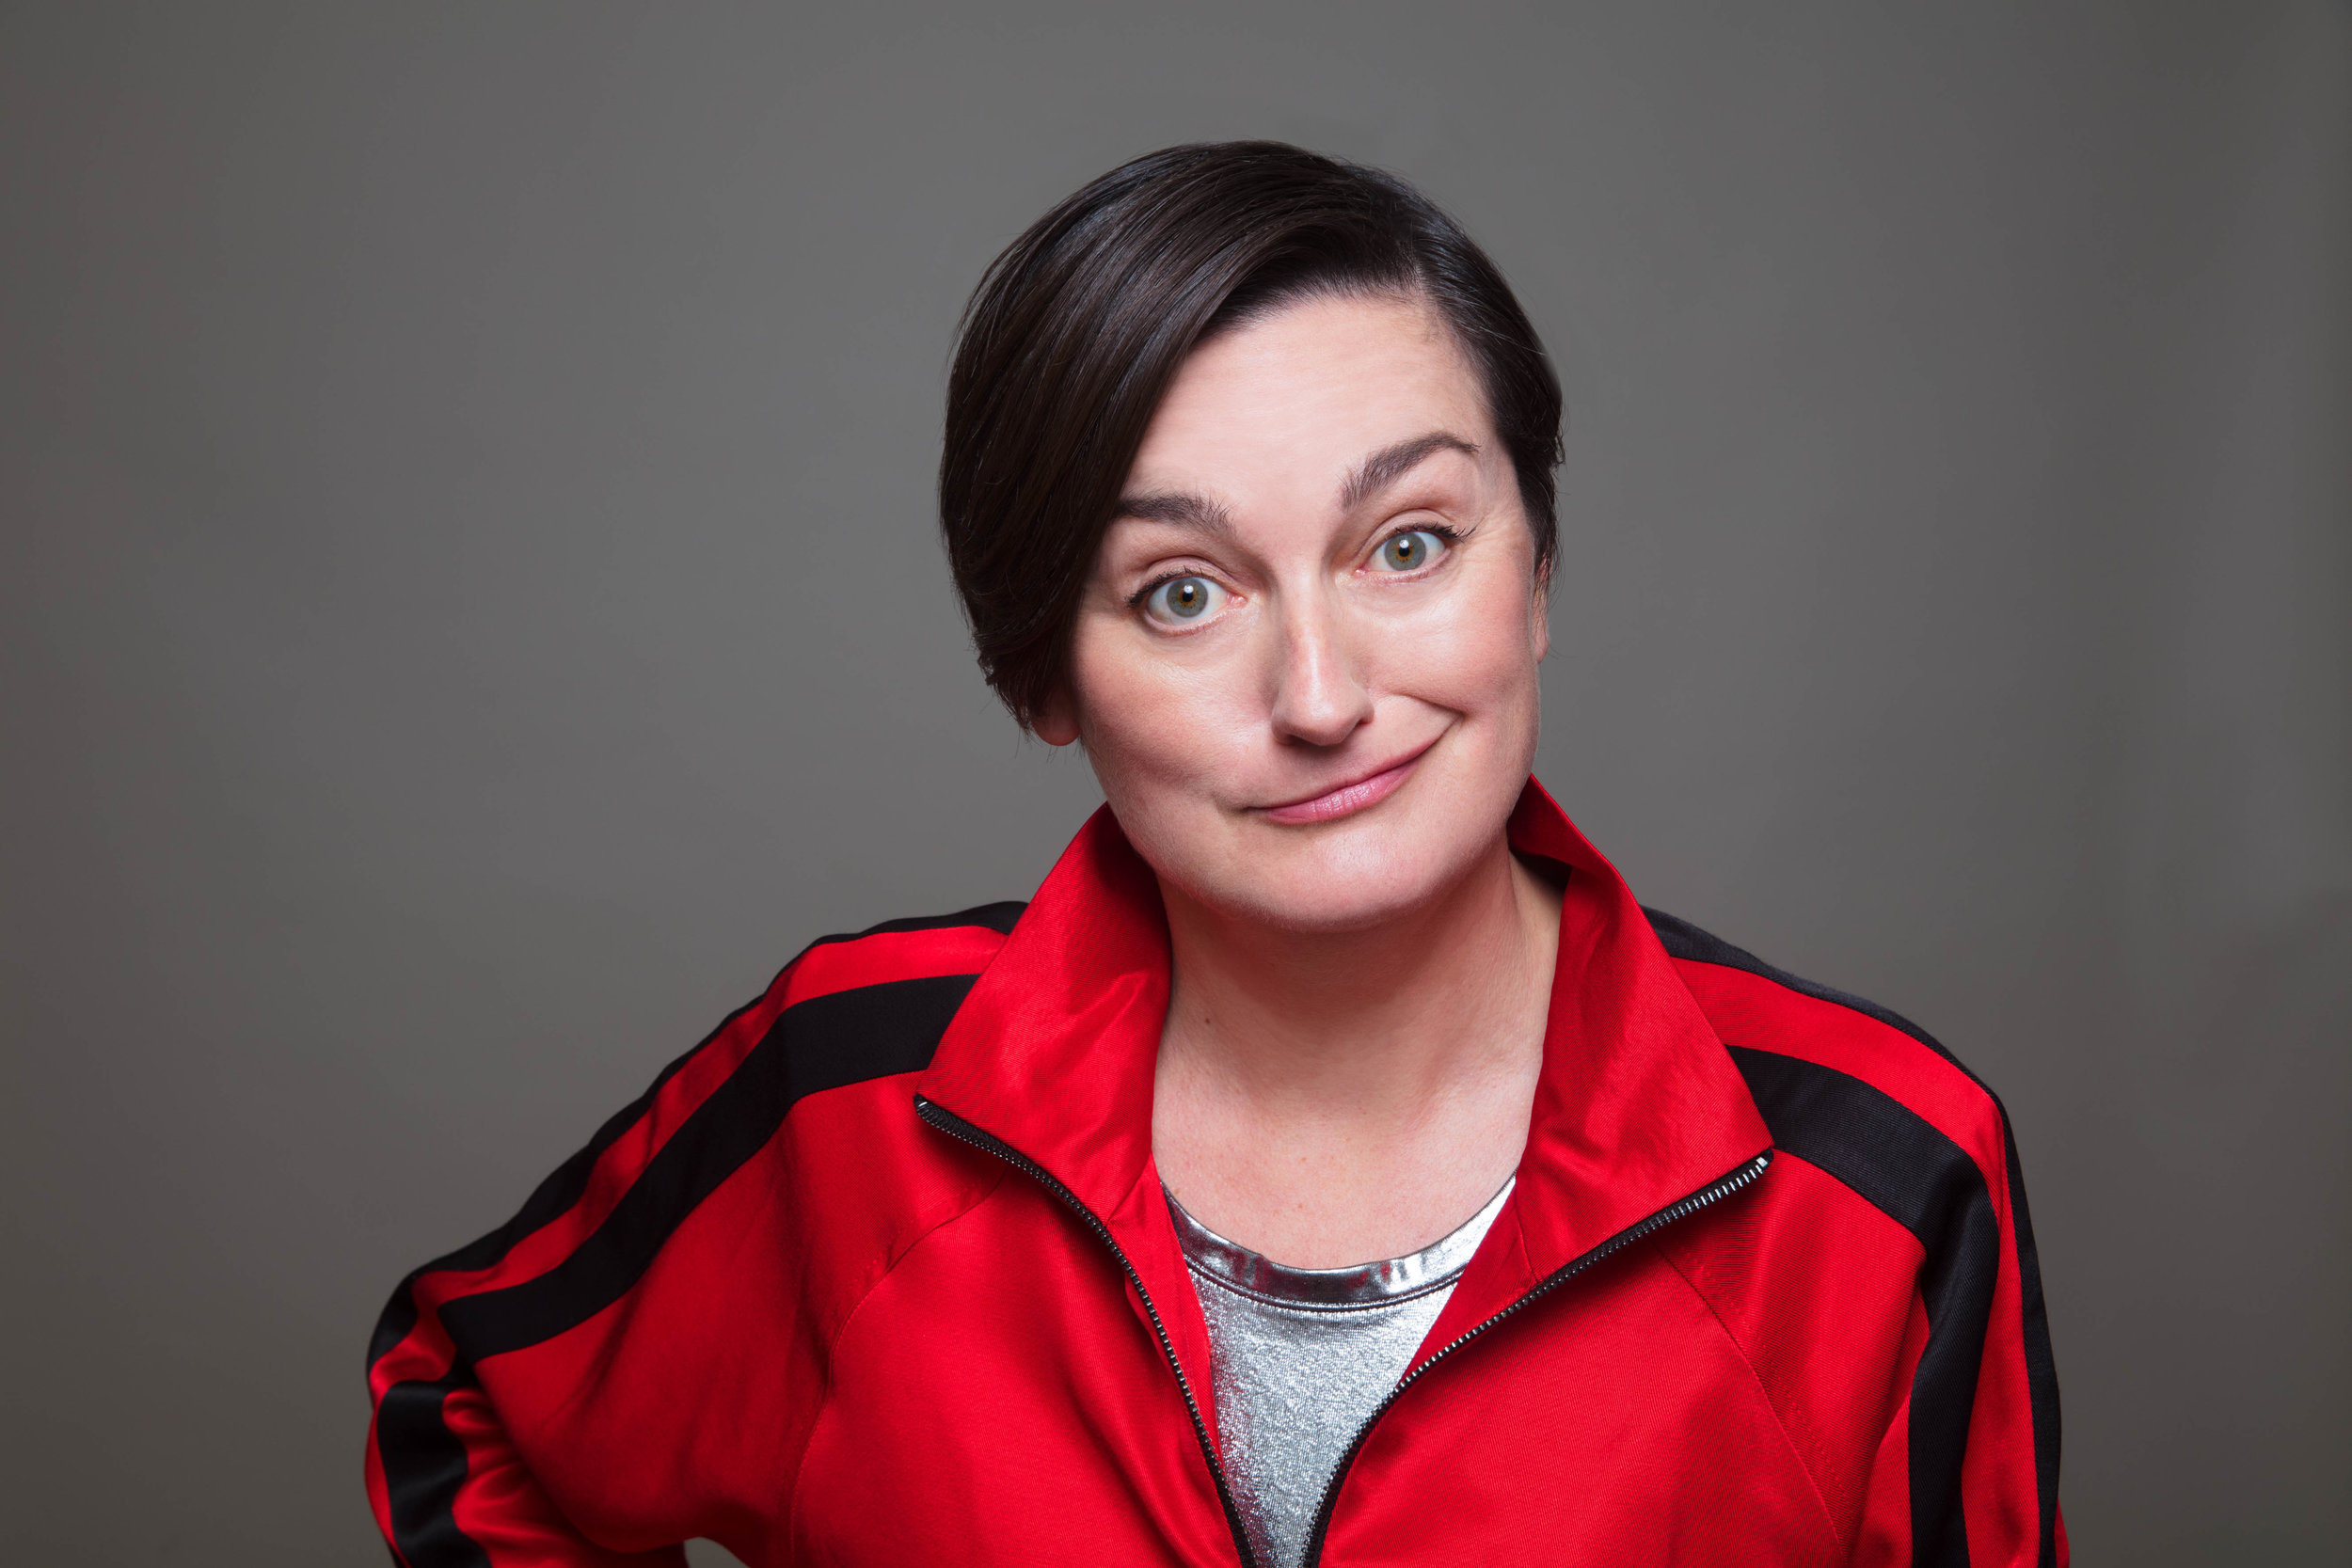 zoe lyons | UK tour 2018/19